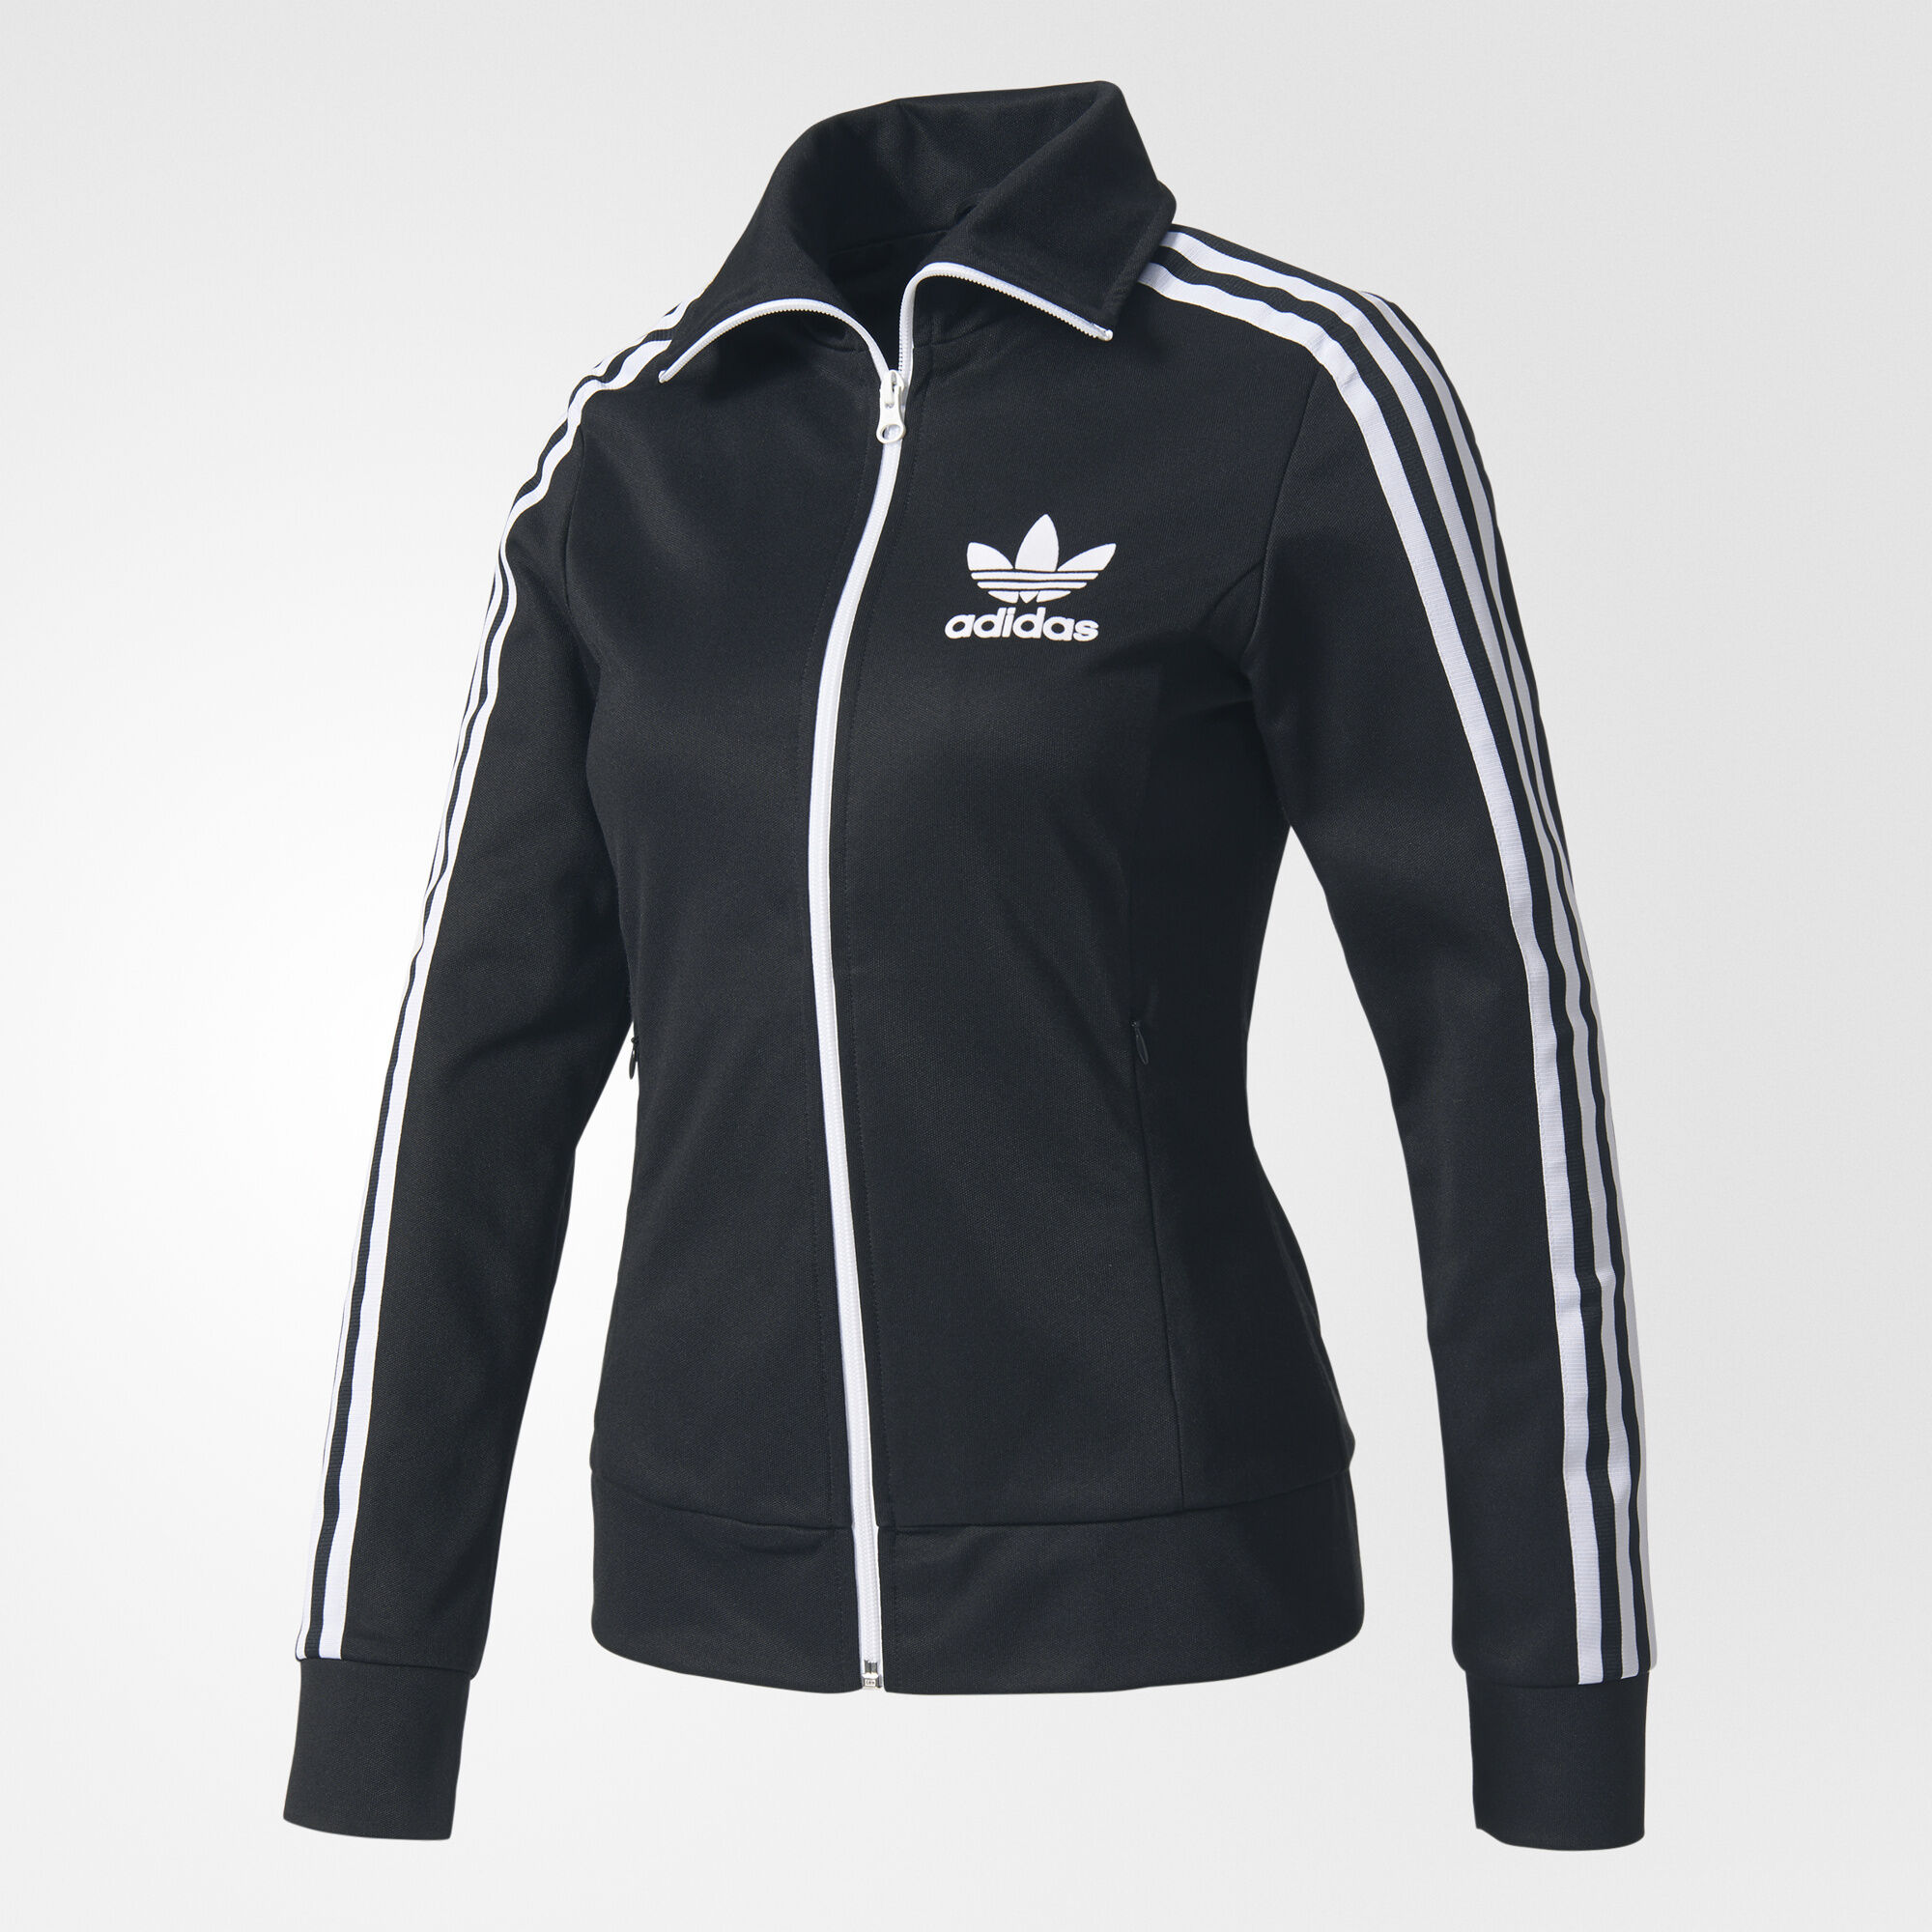 adidas europa track jacket black bk5936. Black Bedroom Furniture Sets. Home Design Ideas